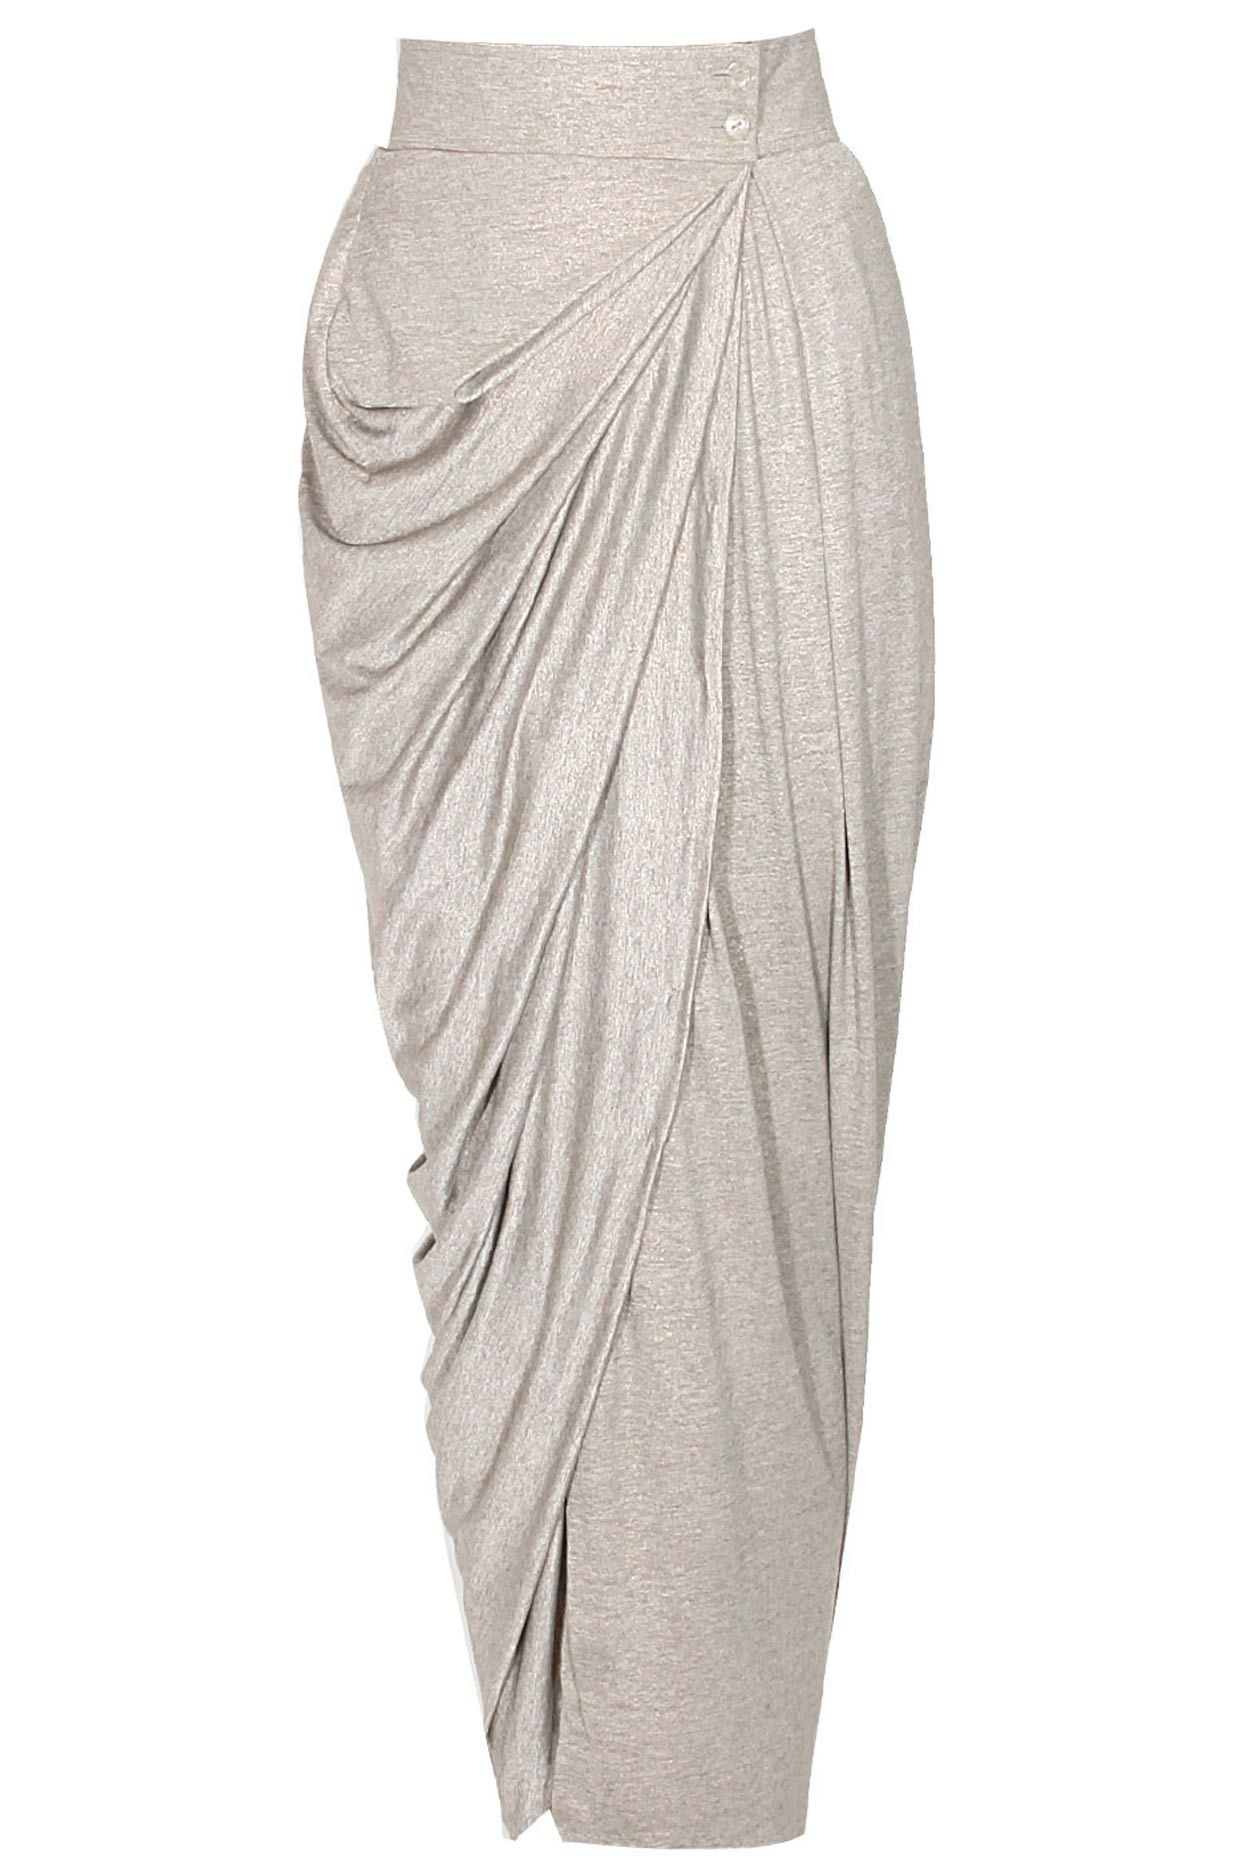 indian product fashion designer by draped beige apparel dresses with drapes skirt drape and shrug gowns original online copy buy details top